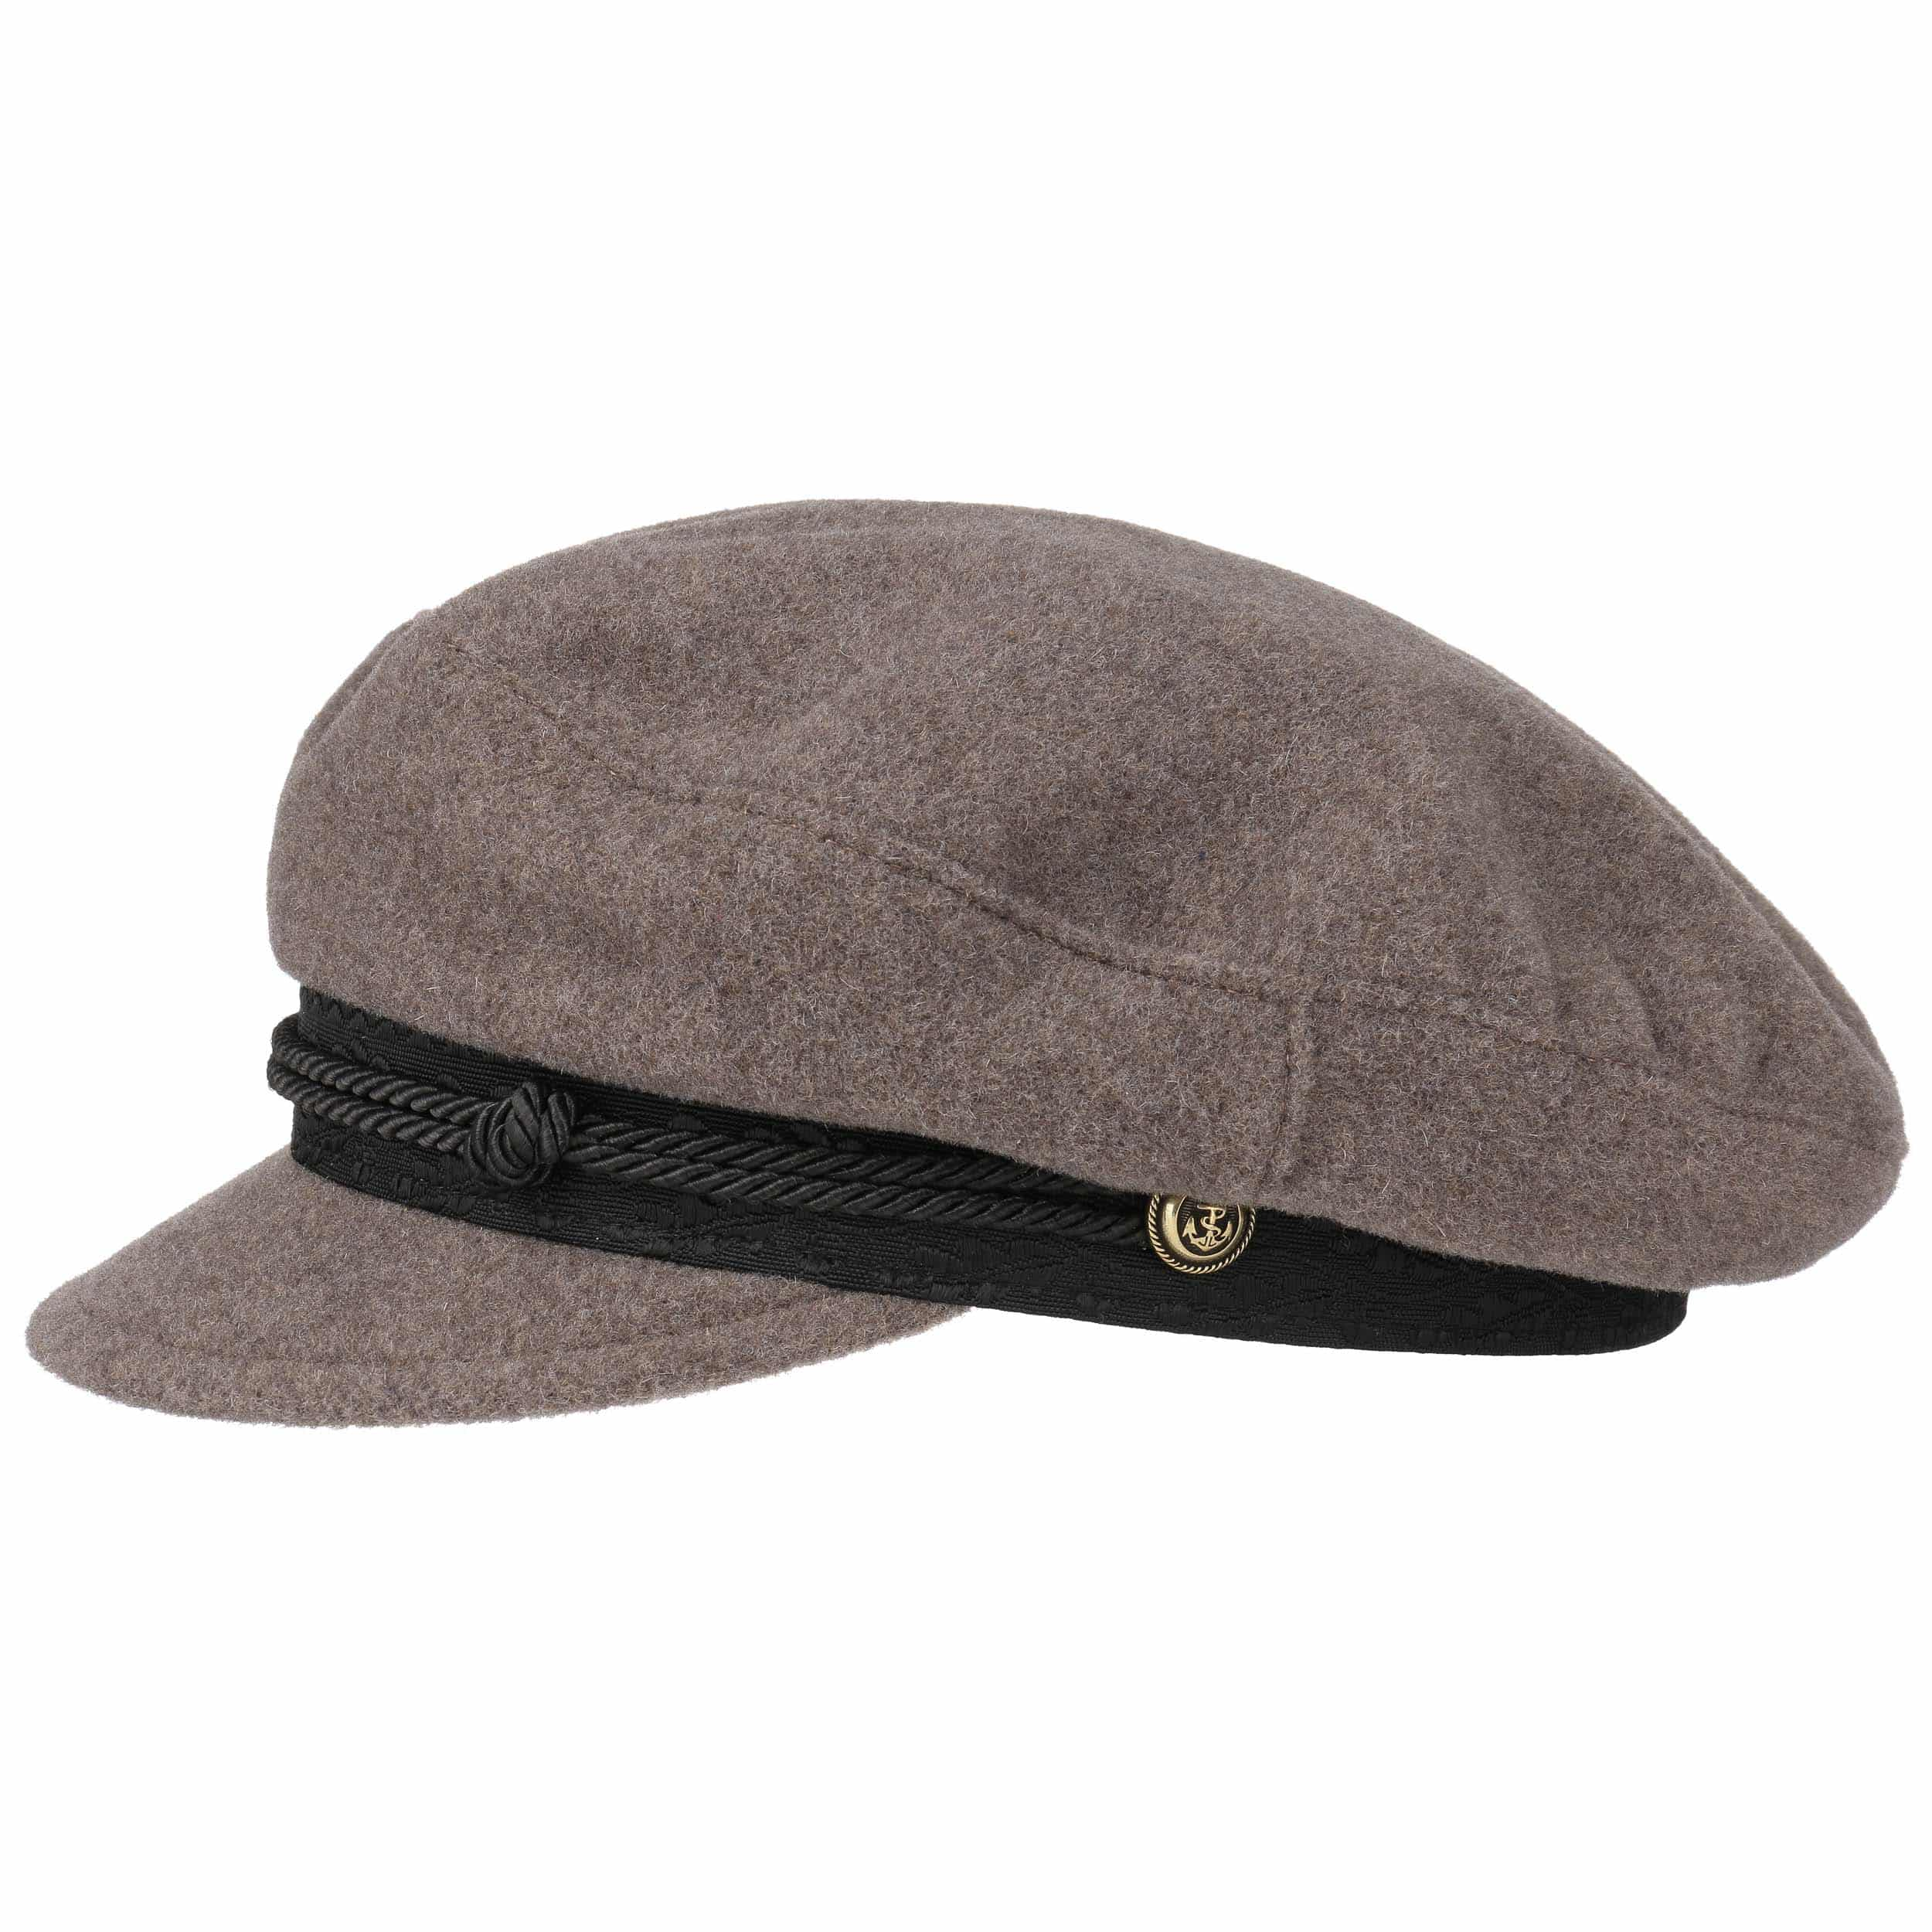 dee78ac0569b1 ... Wool Cashmere Riders Cap by Stetson - taupe 1 ...